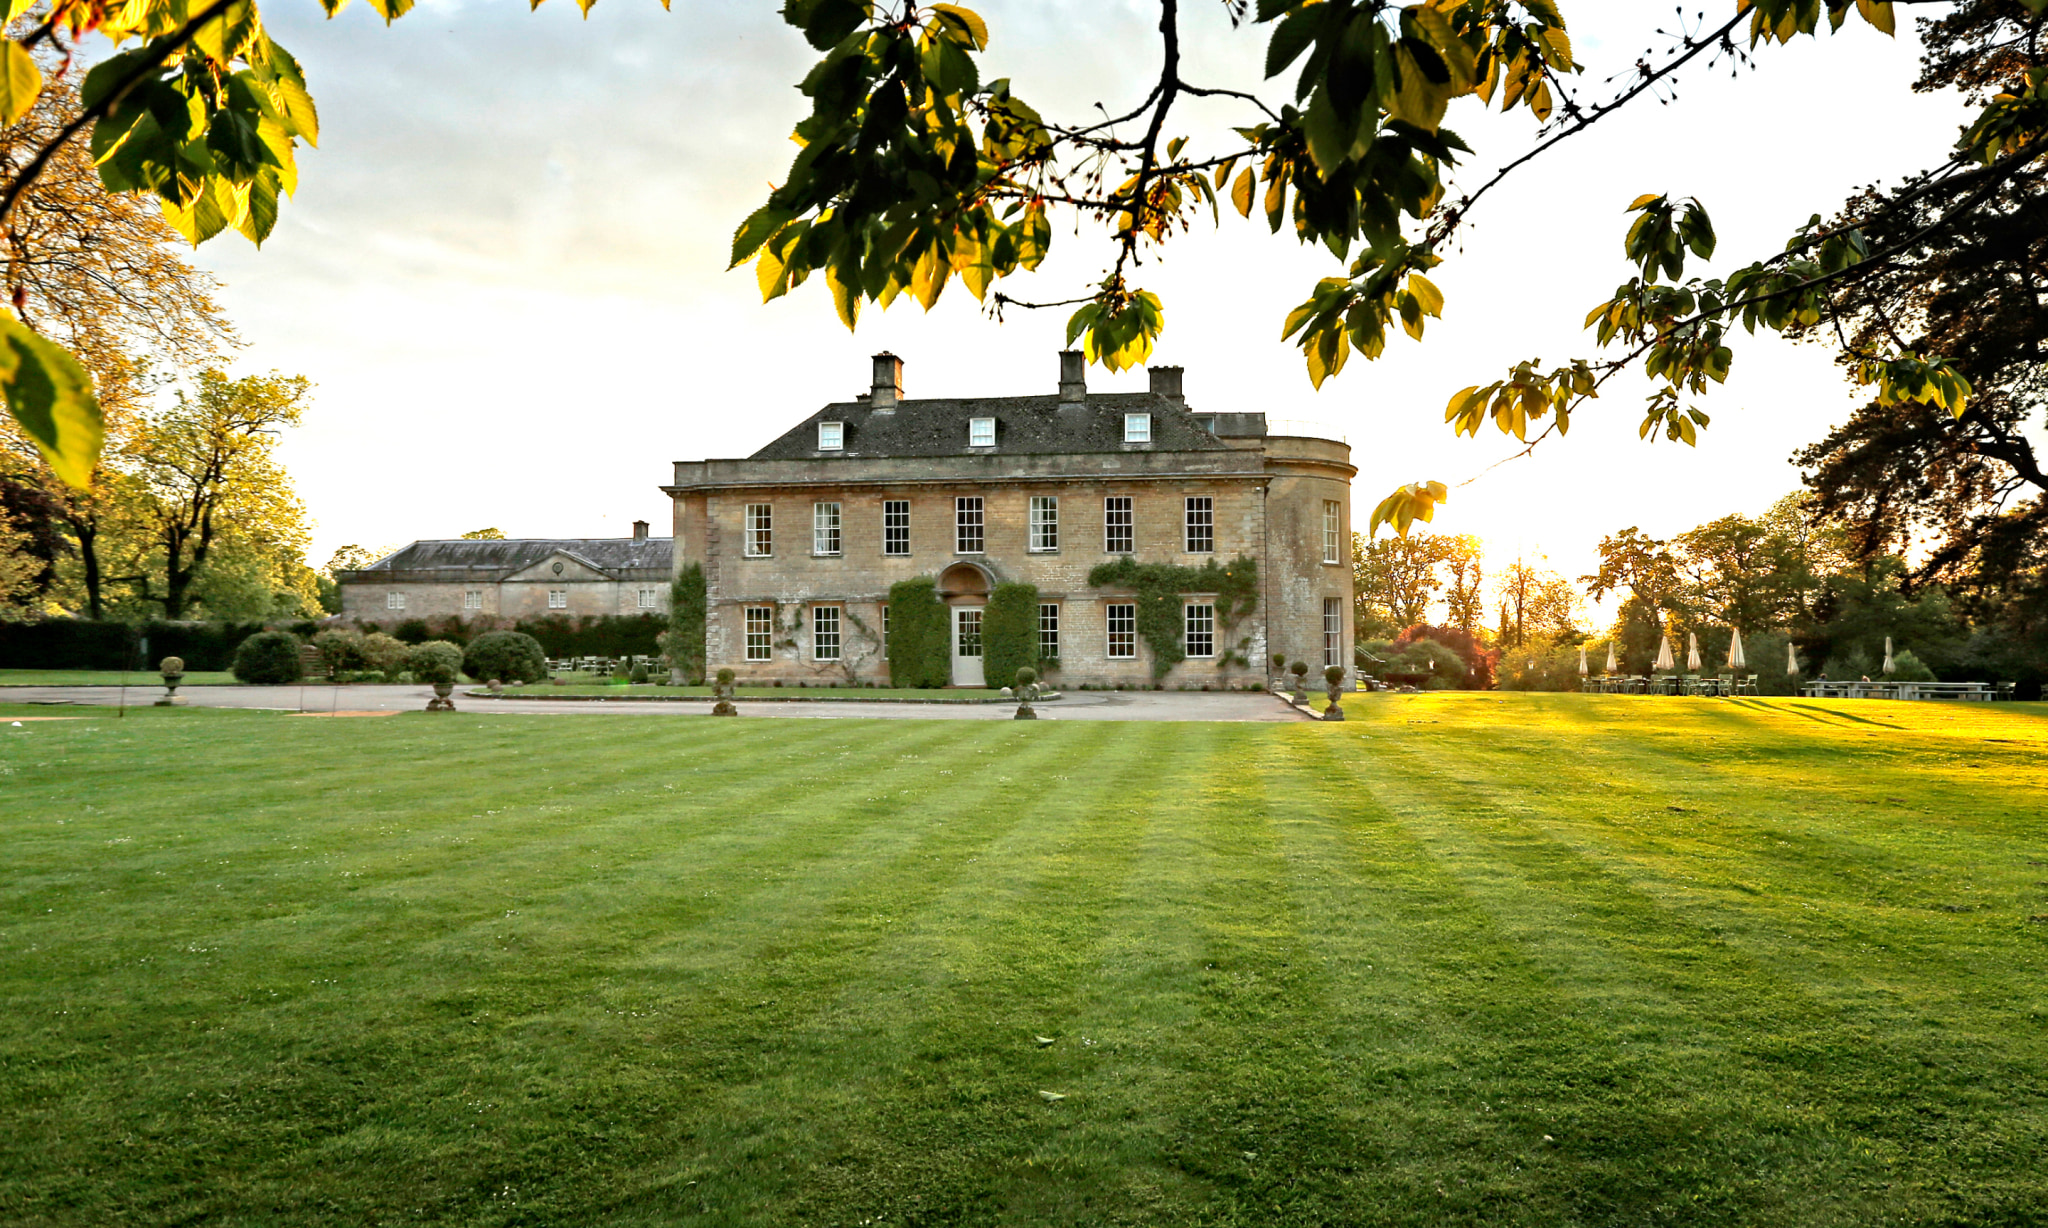 A country house and grounds at sunrise.